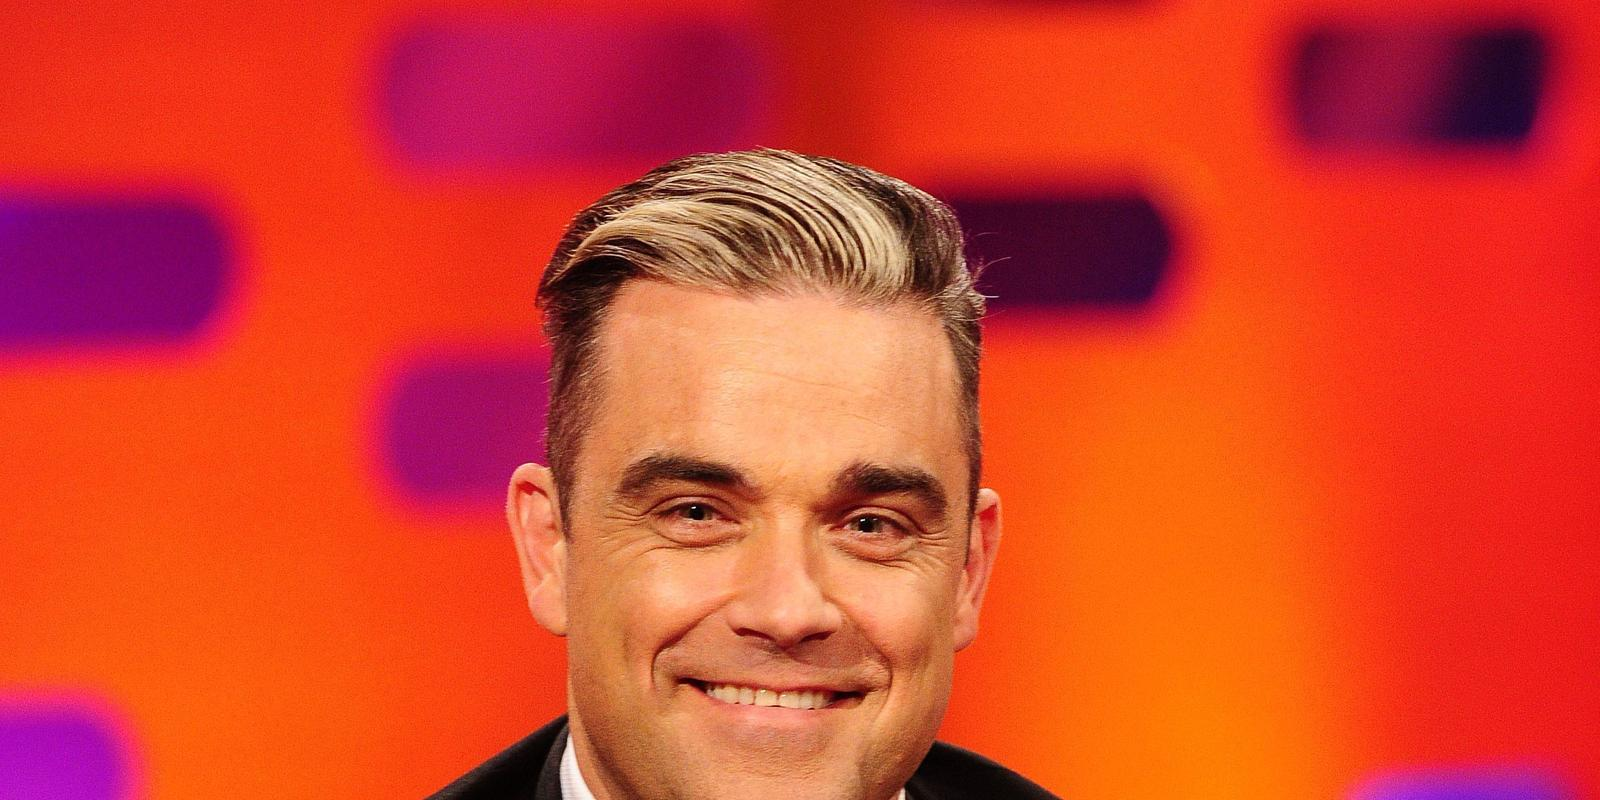 Cleaning ladies mrs overall on the graham norton show this week and - Cleaning Ladies Mrs Overall On The Graham Norton Show This Week And 14